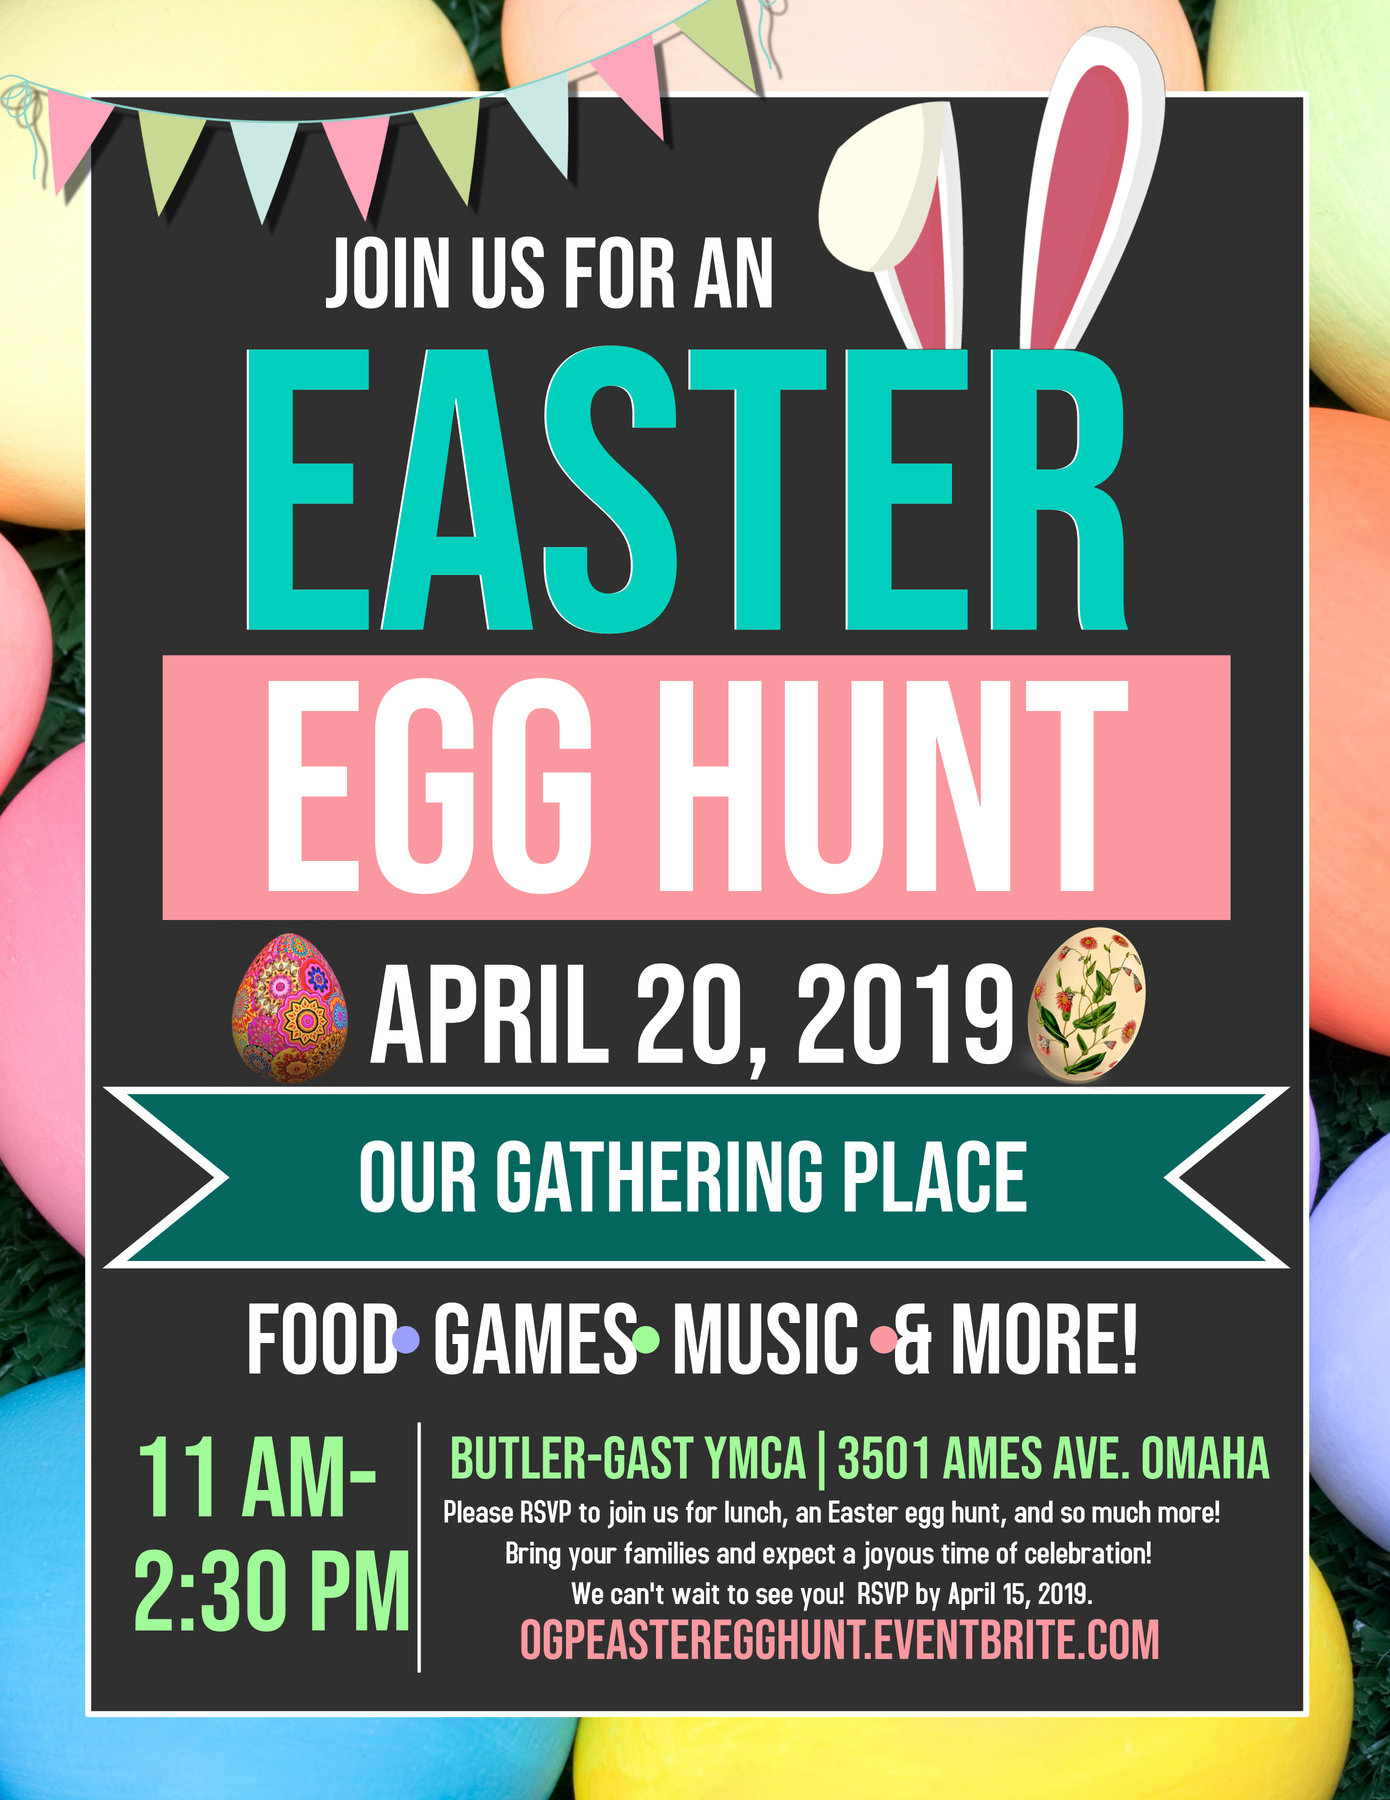 Our Gathering Place is pleased to announce our first Easter Egg Hunt and Lunch. Join us for food, games, family photos, music, and more! Our Gathering Place is a mobile community meal for families with special needs children, teens and young adults. Come experience a judgment-free zone where all are valued and celebrated!   Suggested donation:  $10 for a family of 2, $20 for a family of 4 or more. No one will be turned away. All donations will be taken at the check-in table. Please RSVP by April 15th. We look forward to celebrating with you!